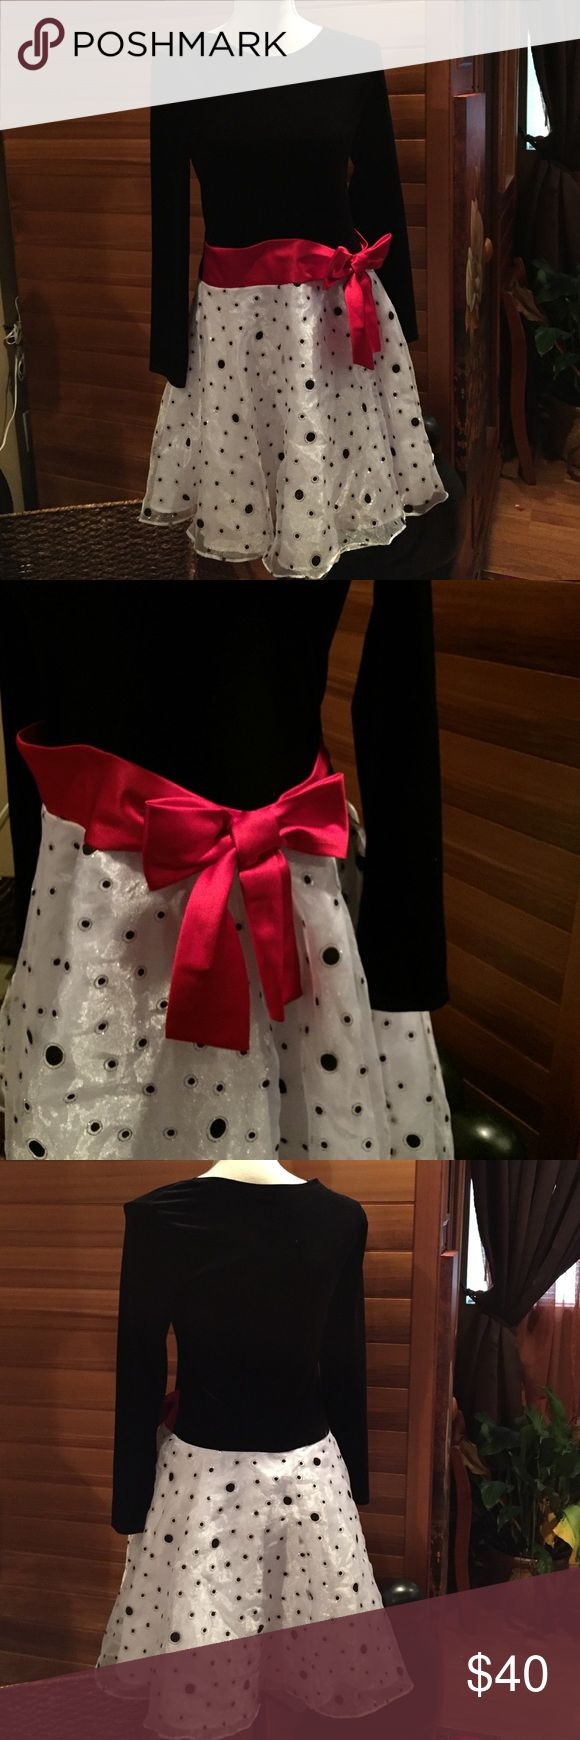 Like New Holiday/Formal Dress Like New Dress with velvety black top portion, bright red Bow at he waist and sheer white with black polka dot skirt (metallic circled). Wore once.  Beautiful Dress!! Bonnie Jean Dresses Formal